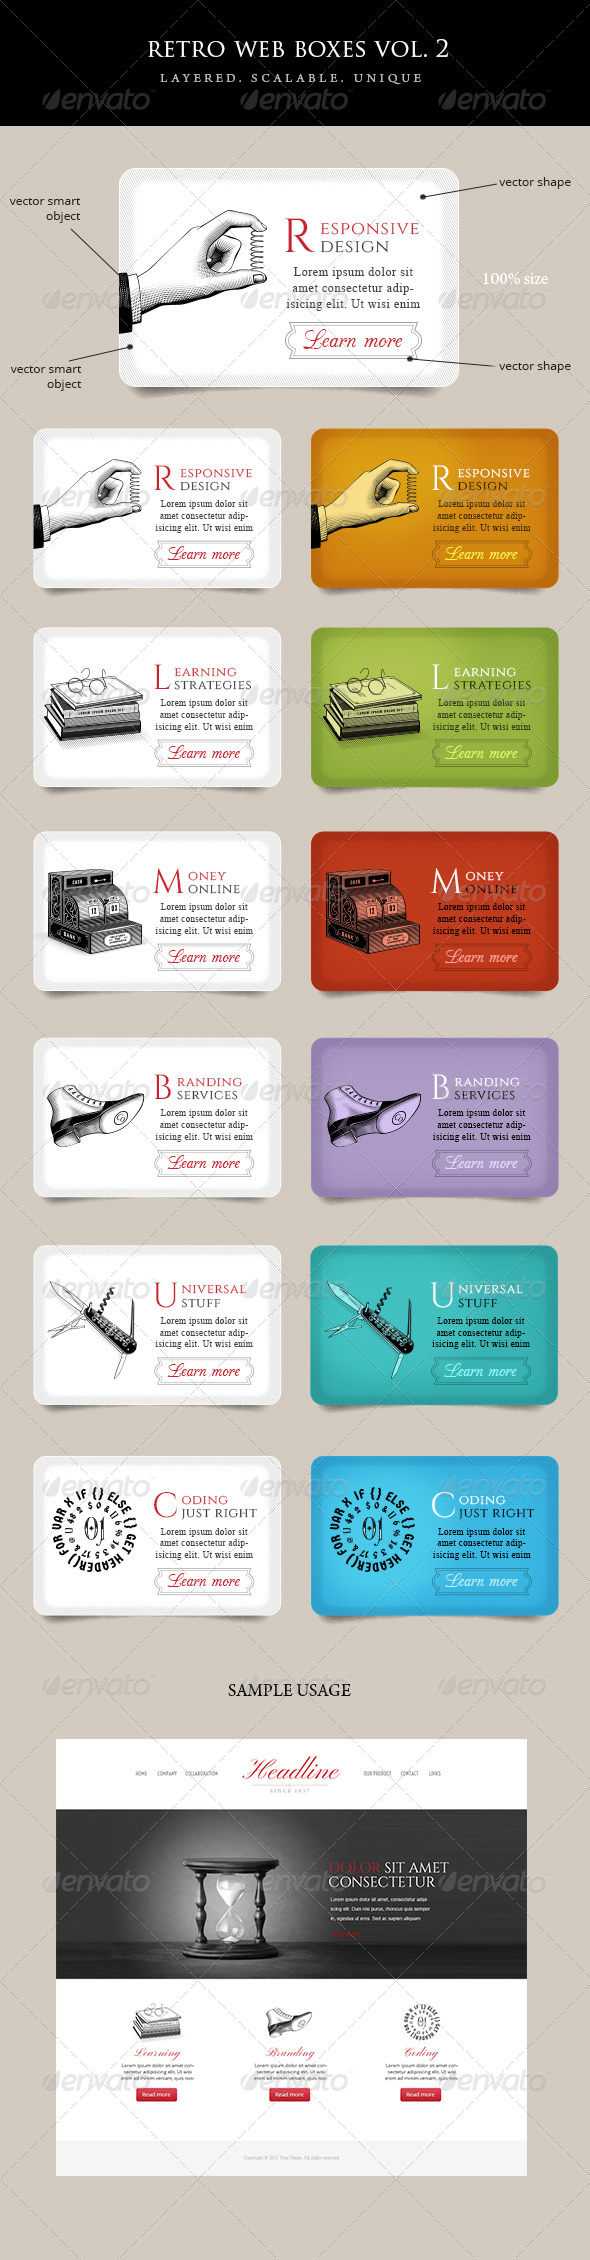 Vintage Web Boxes with Icons Vol 2 - Banners & Ads Web Elements